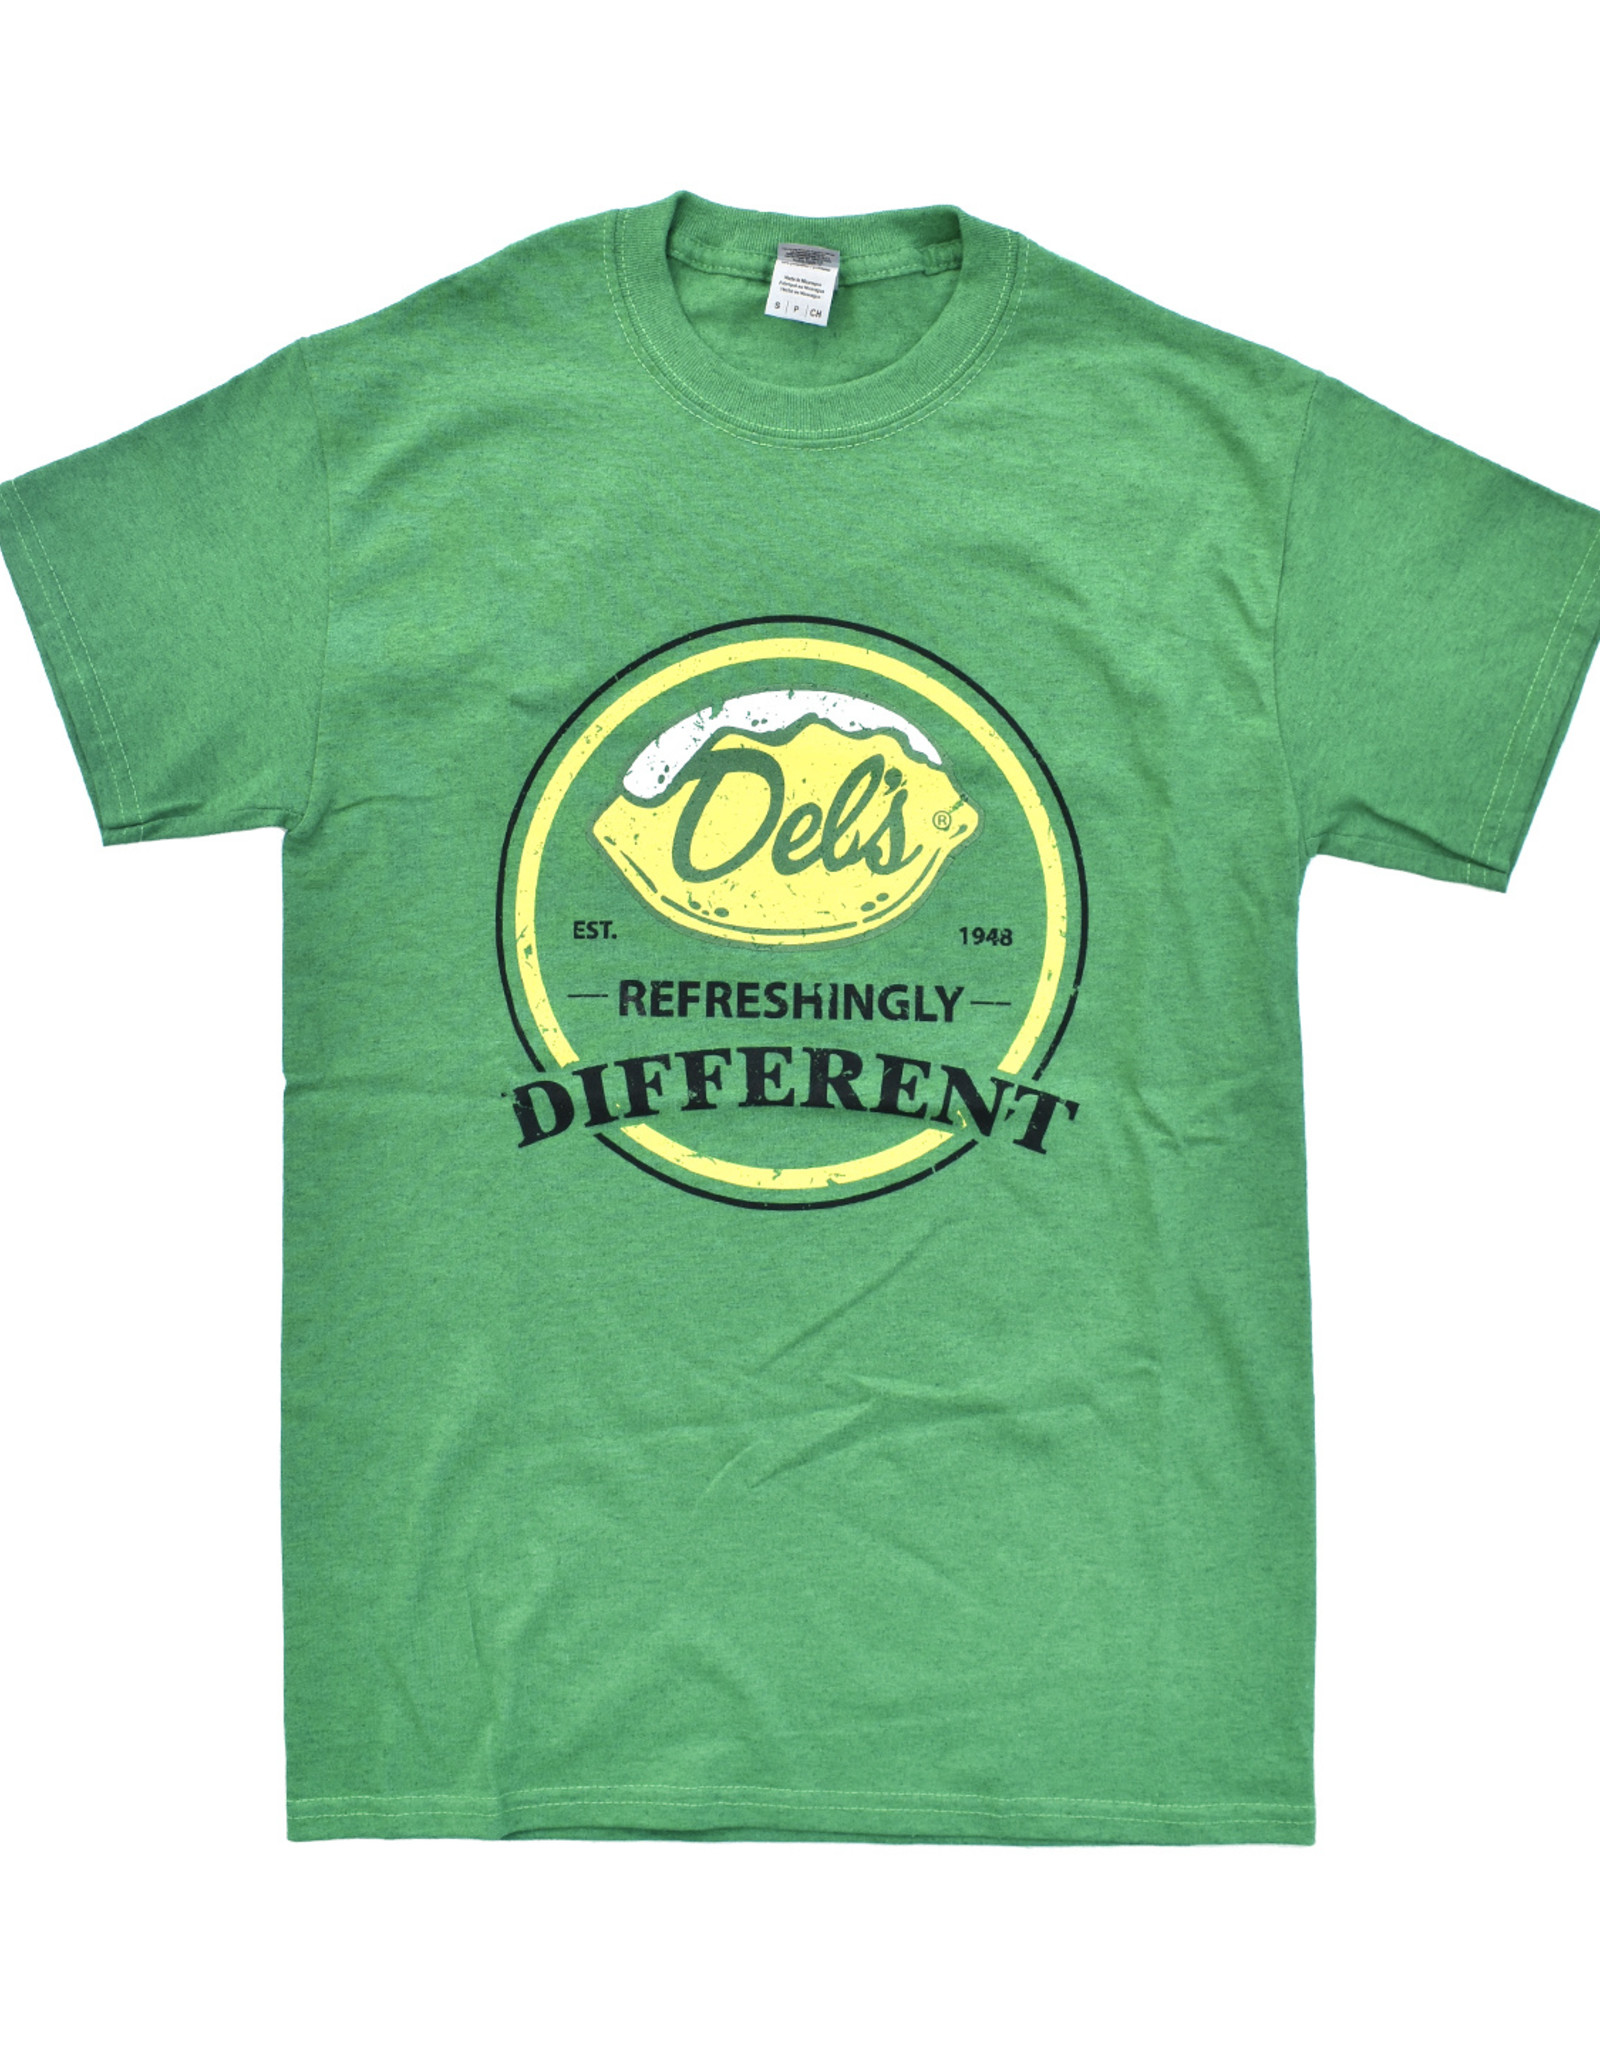 Del's Refreshingly Different T-Shirt